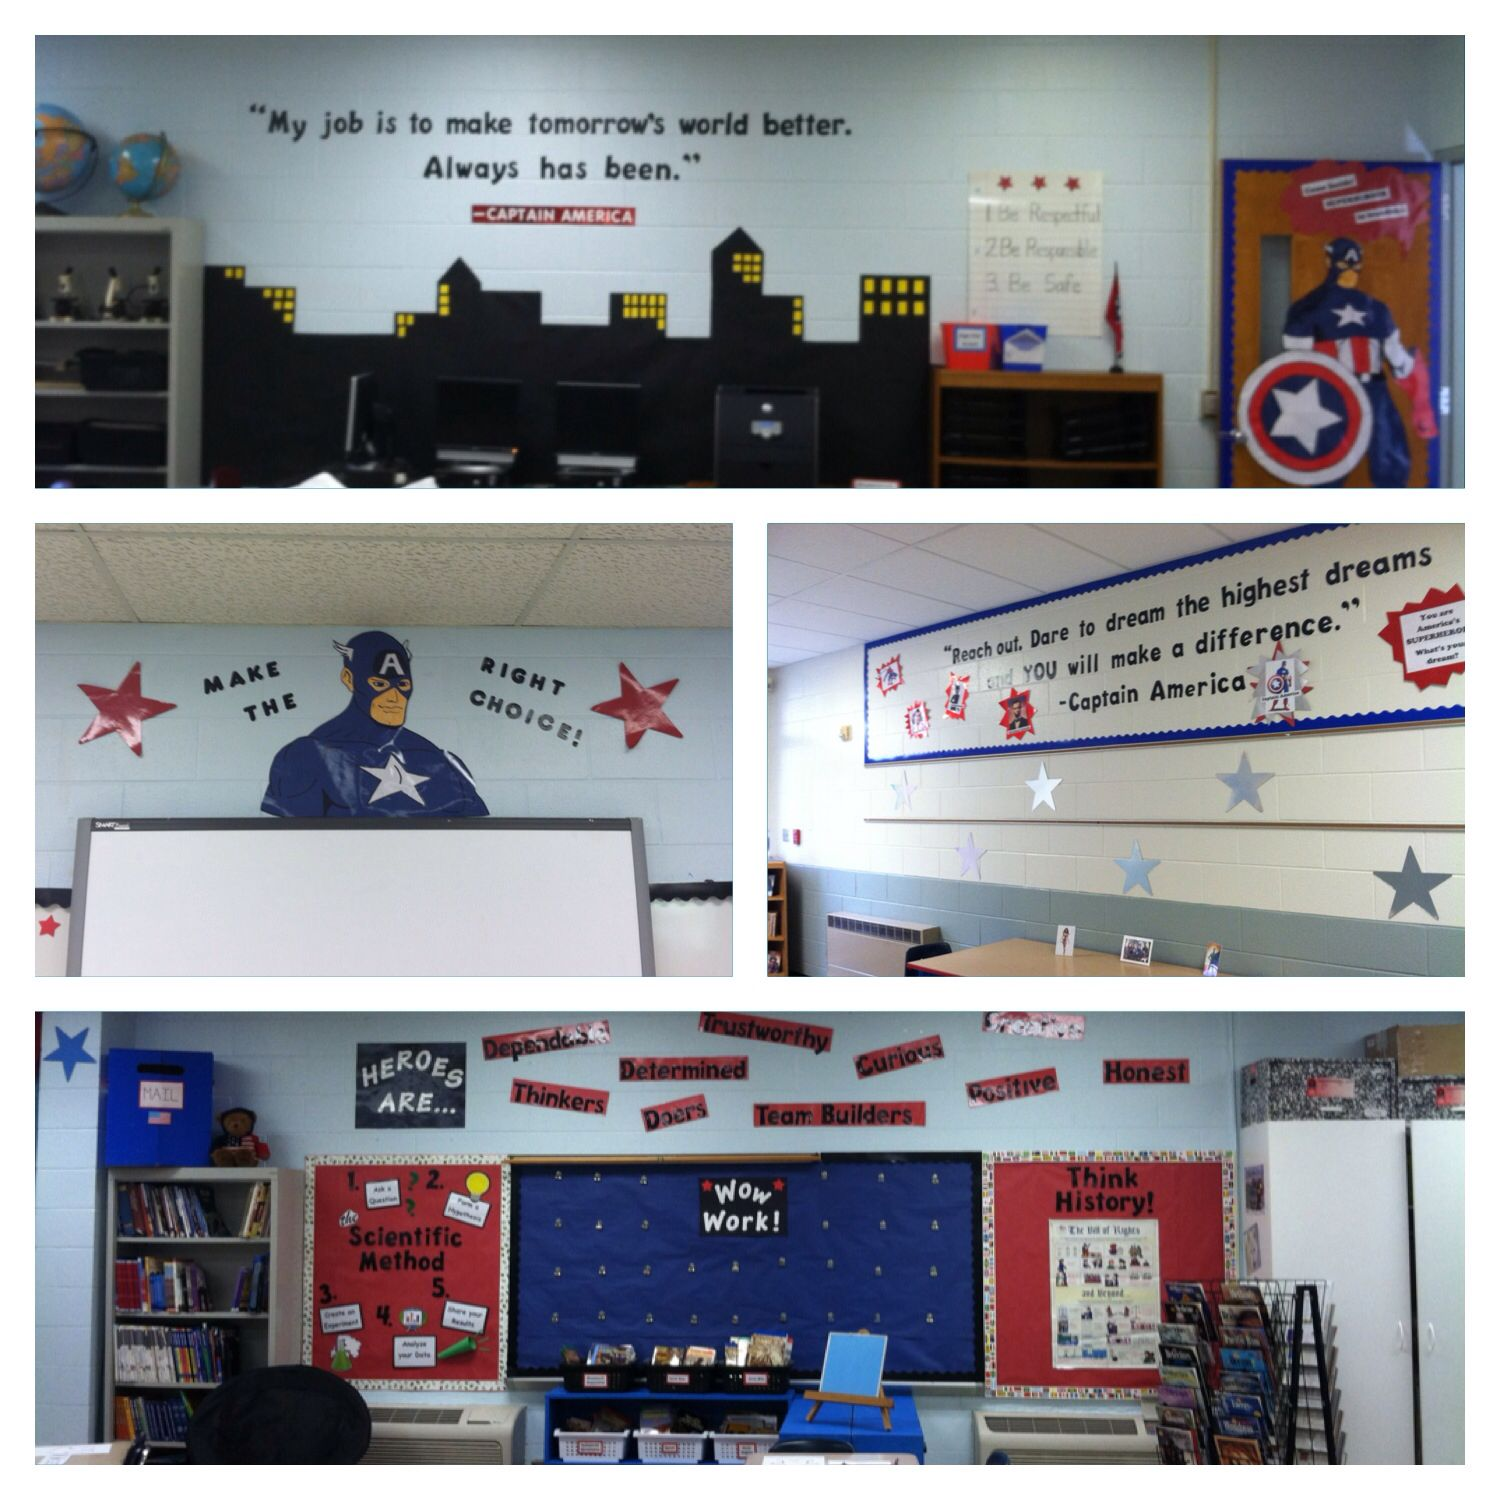 captain america theme classroom pinterest. Black Bedroom Furniture Sets. Home Design Ideas